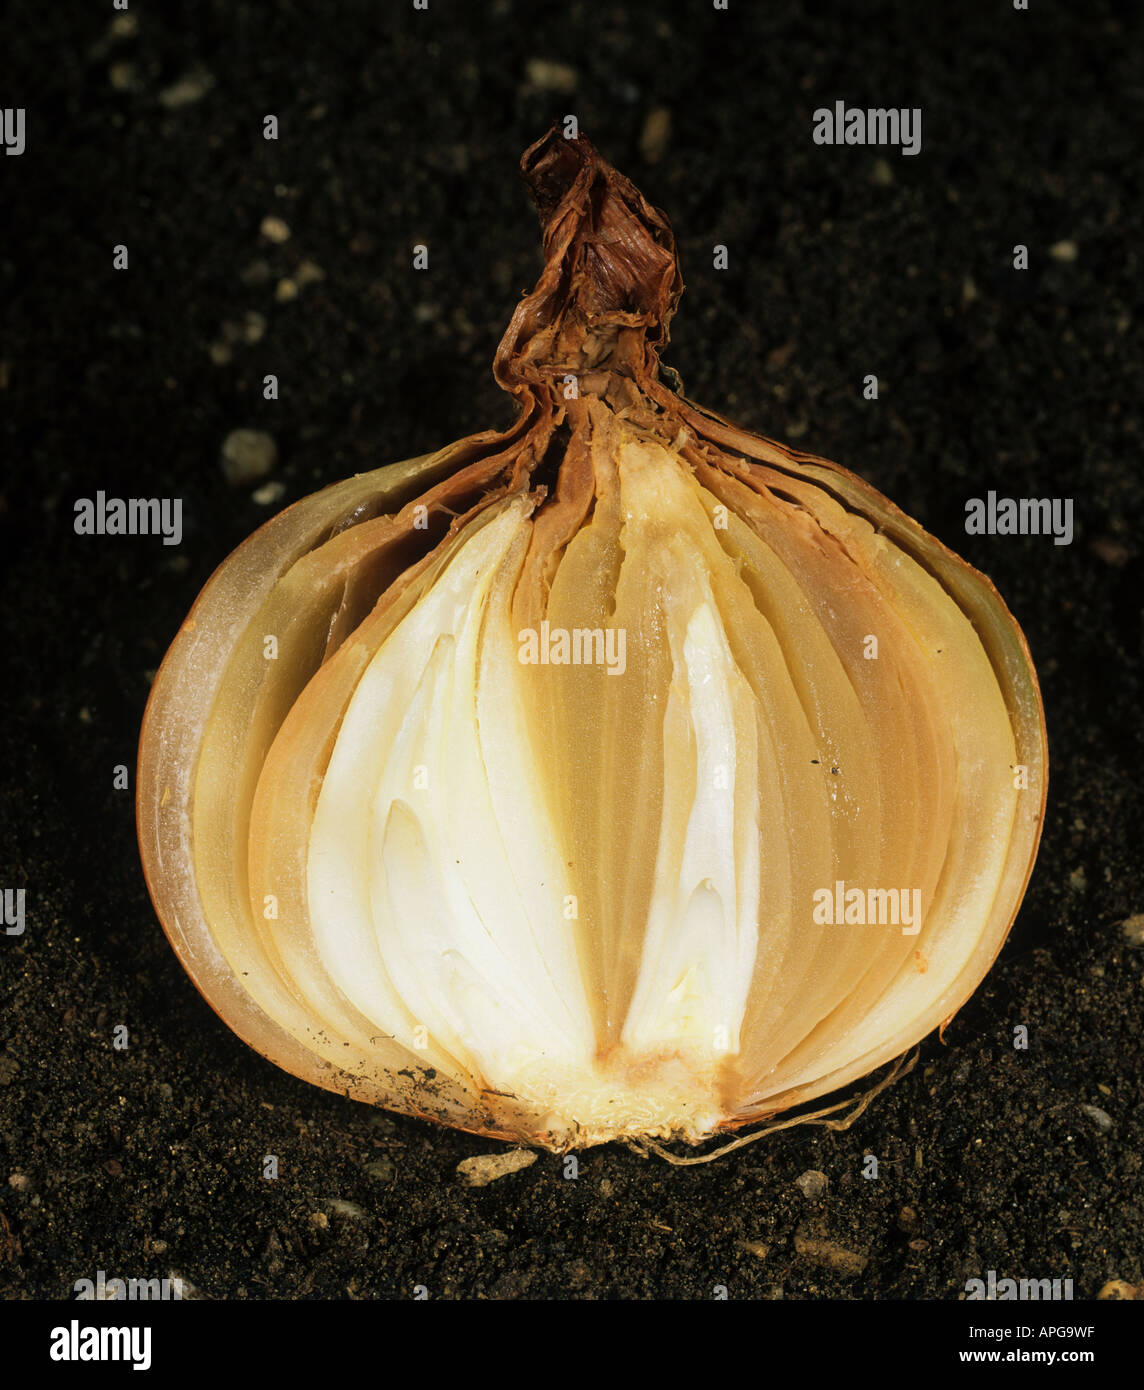 Neck rot Botrytis allii section through onion bulb showing advancing rot - Stock Image